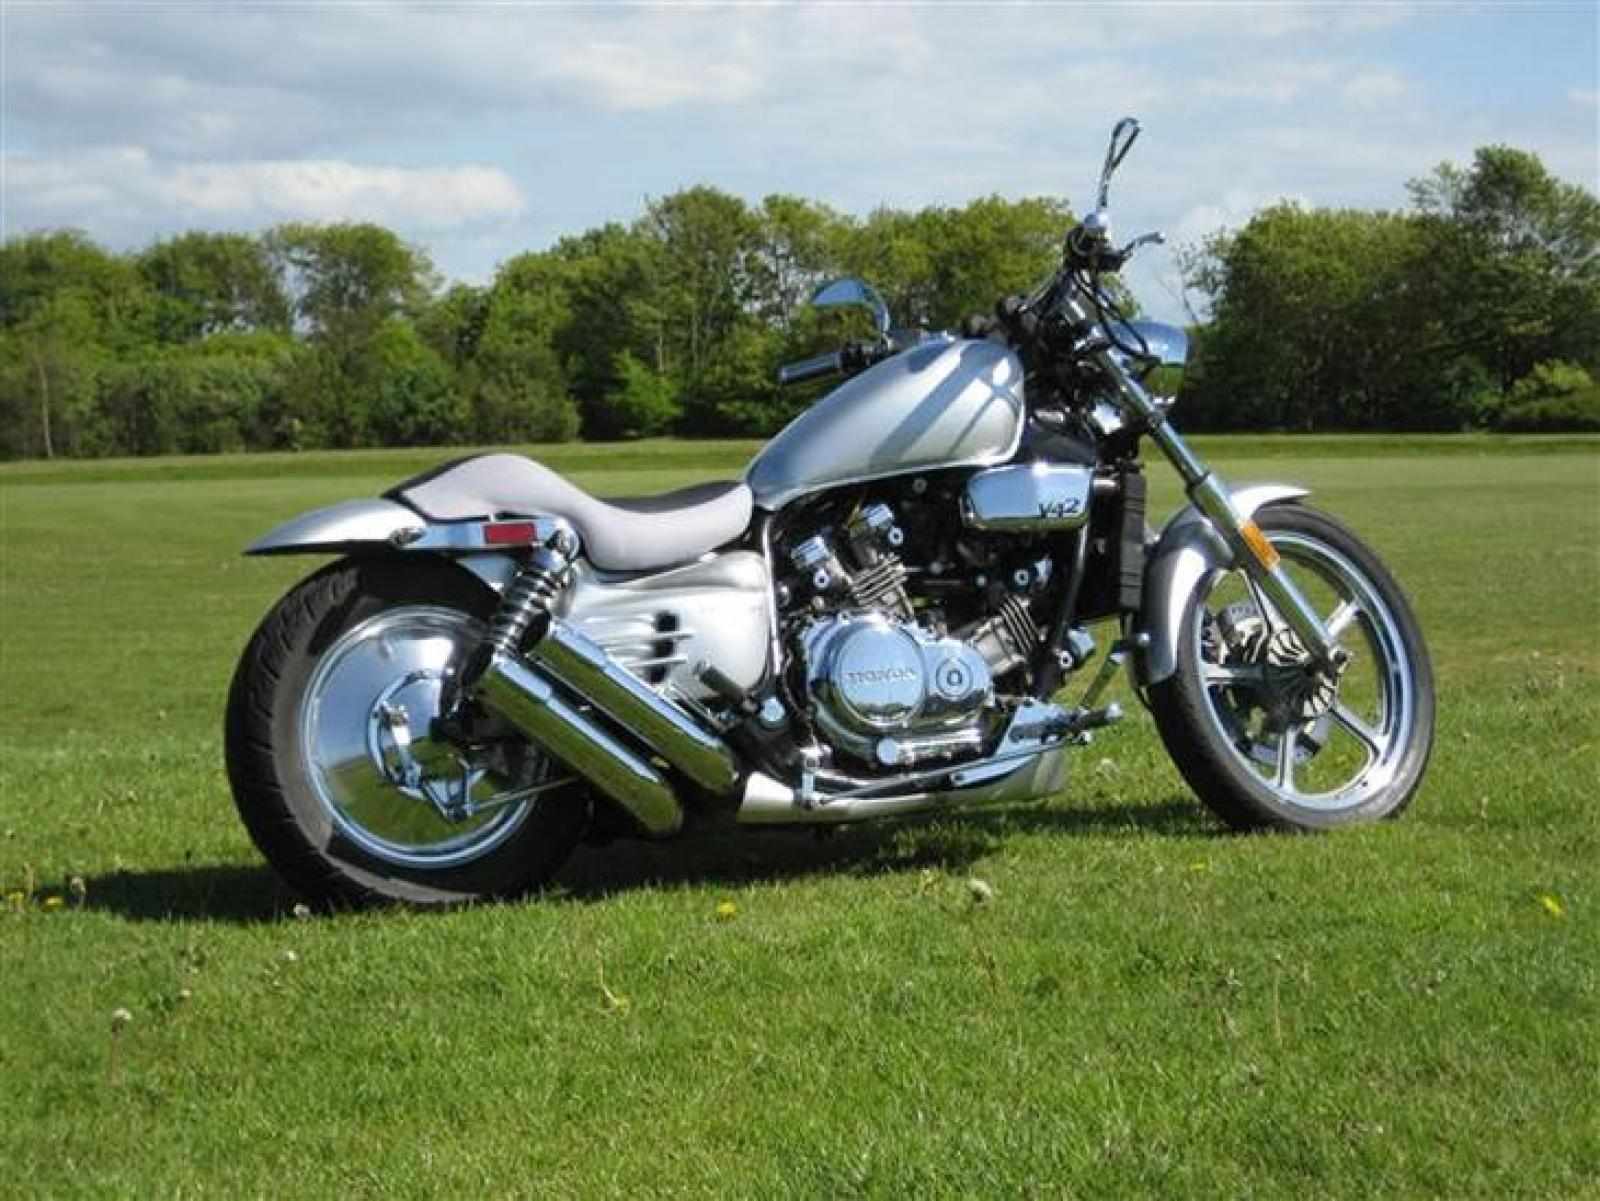 Images moreover Honda Magna Supermagna furthermore Hyundai Elite I20 Price besides Hyundai Elite I20 Features Specifications 140936 in addition Free Maps Of Michigan. on honda magna specifications